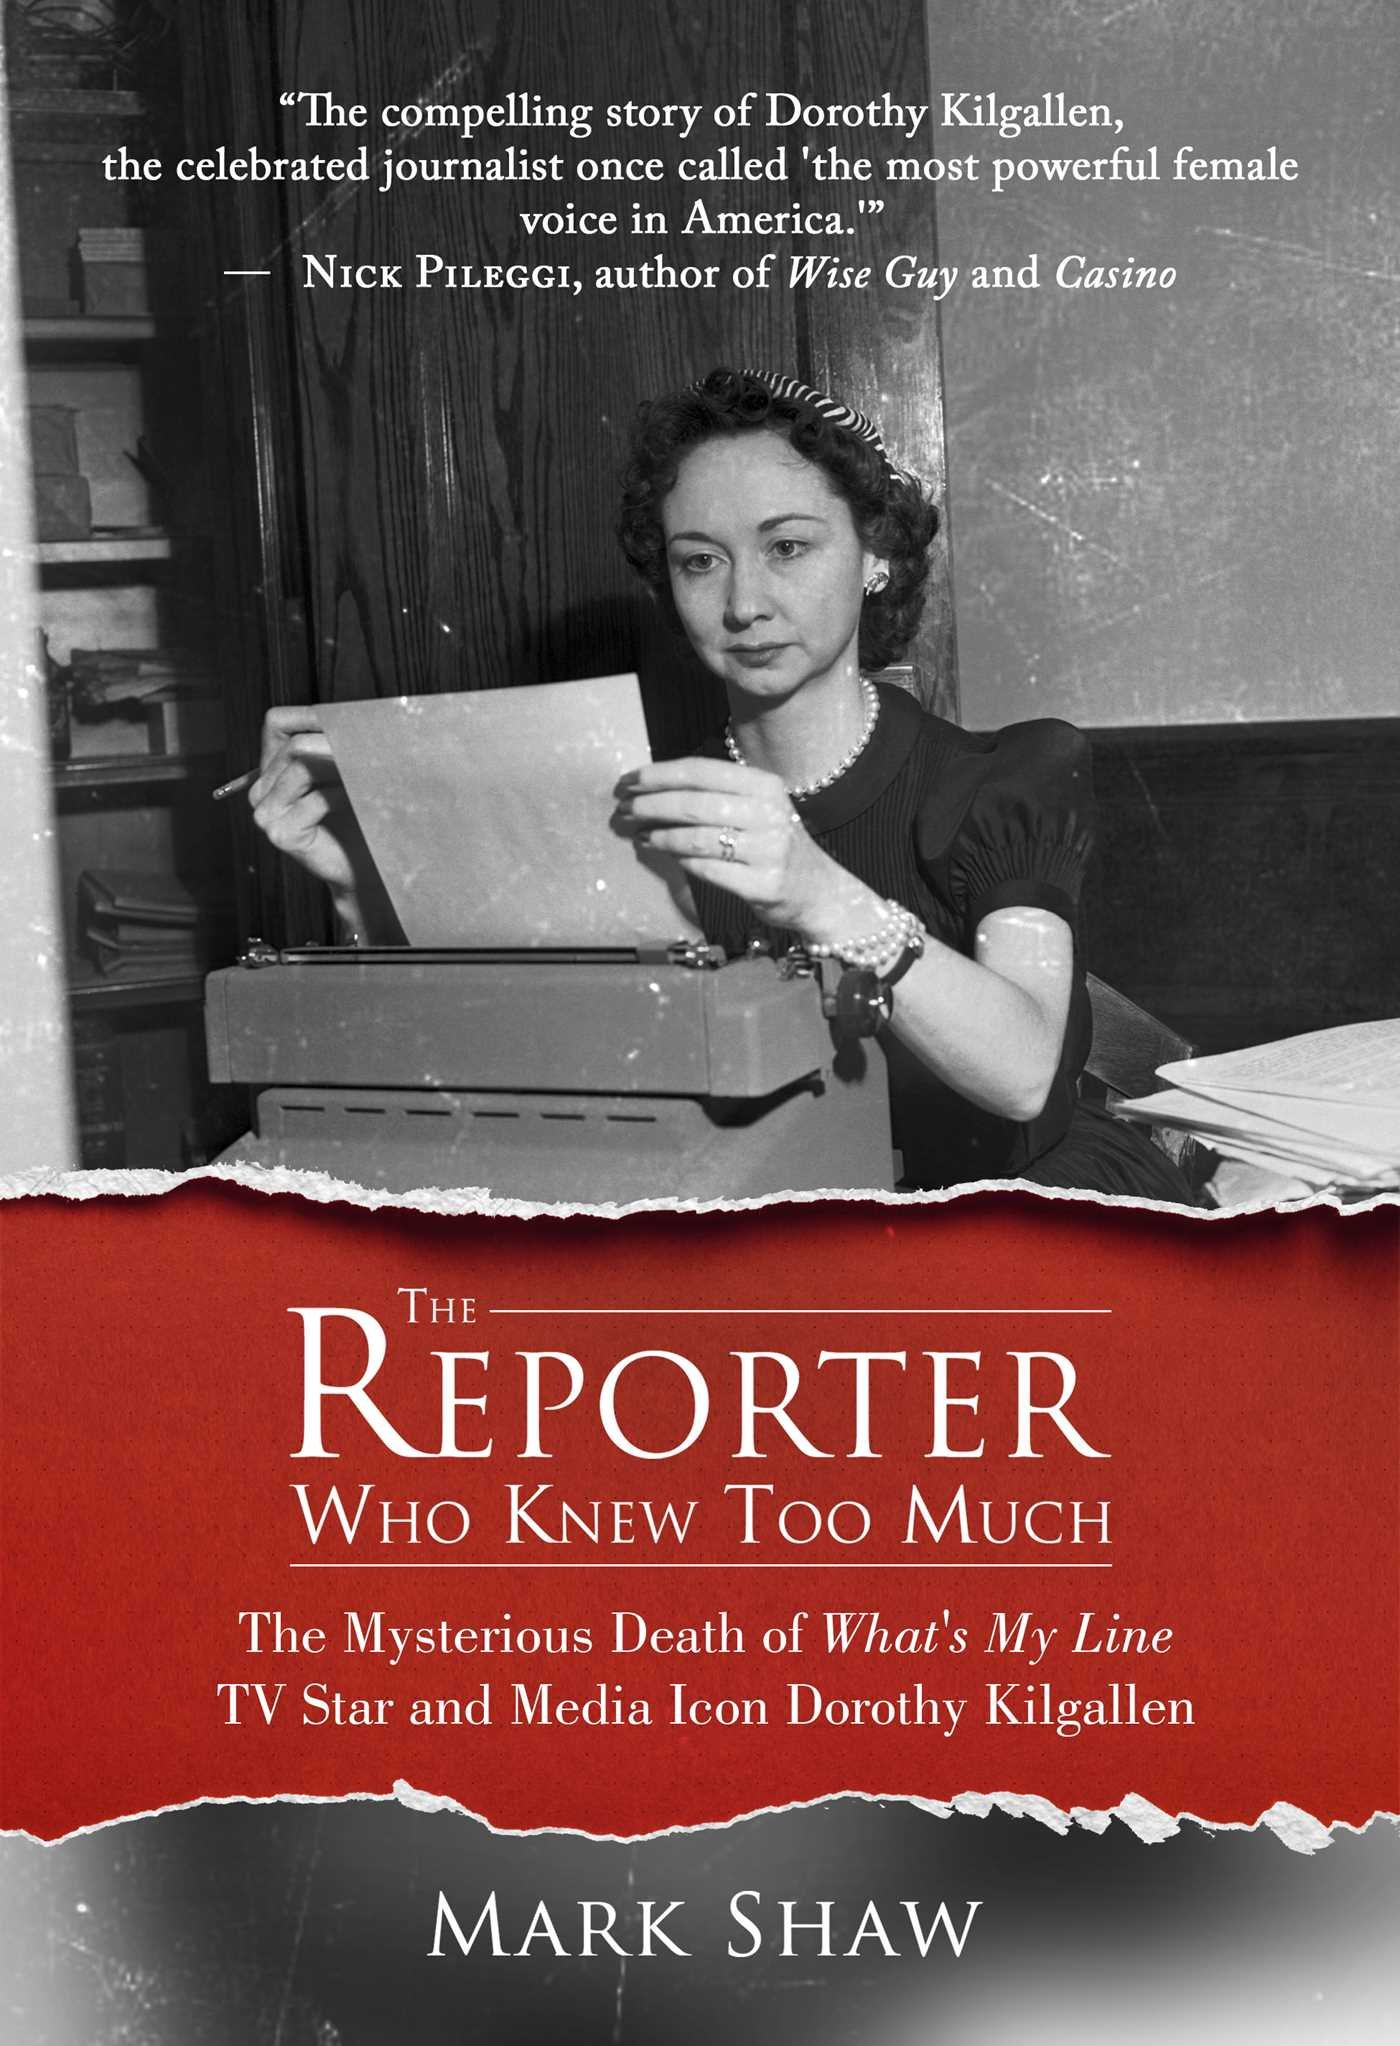 The Reporter Who Knew Too Much: The Mysterious Death of